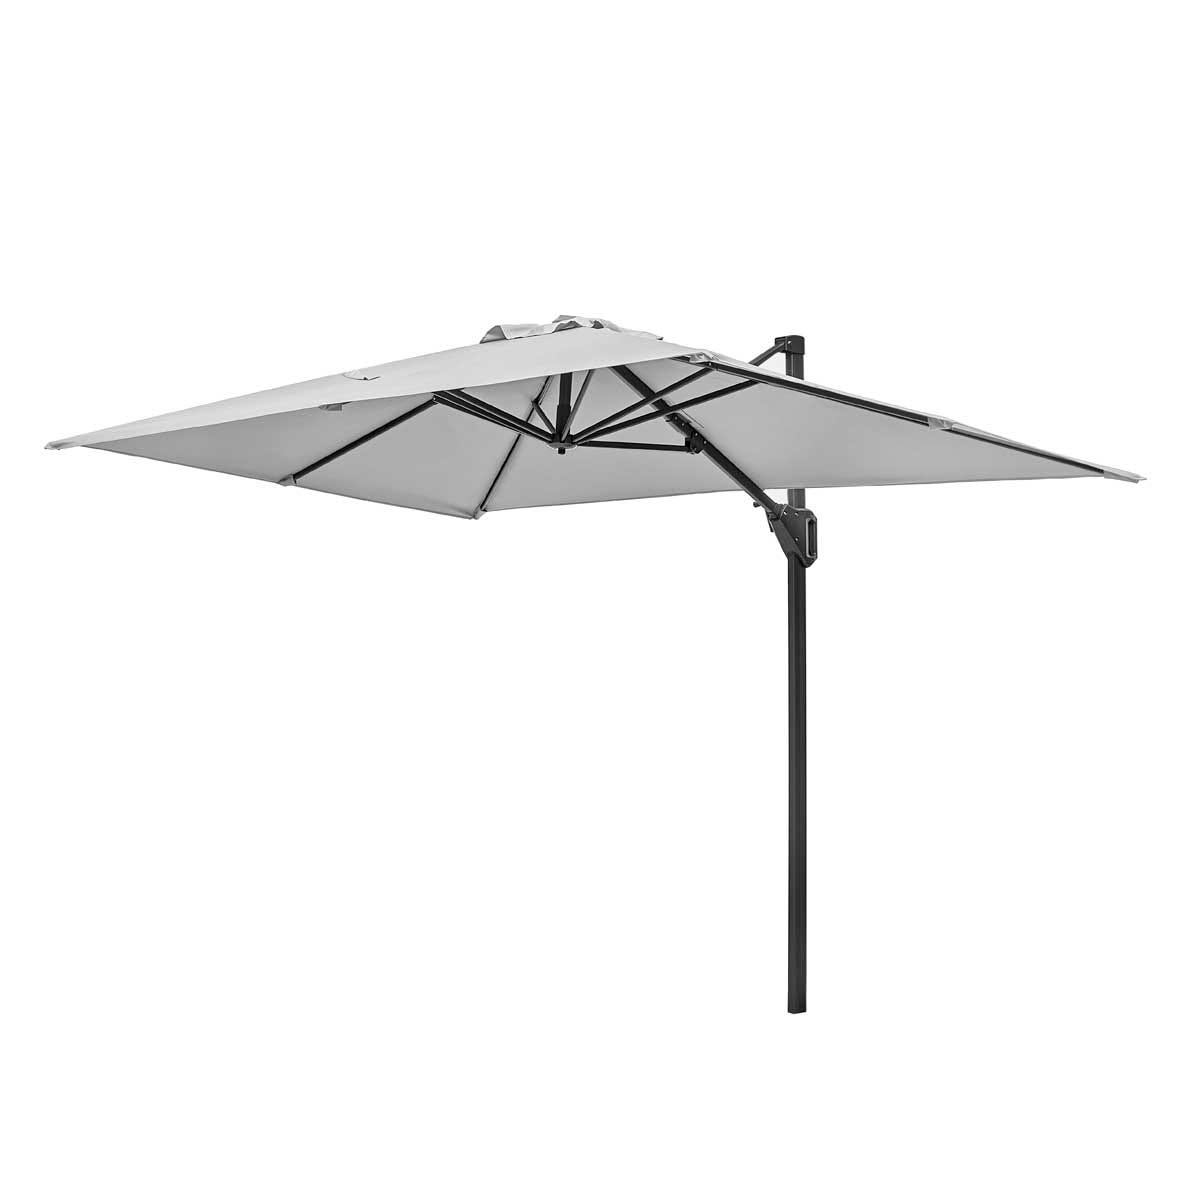 Platinum Voyager T1 3 x 2m Parasol (base not included) - Light Grey